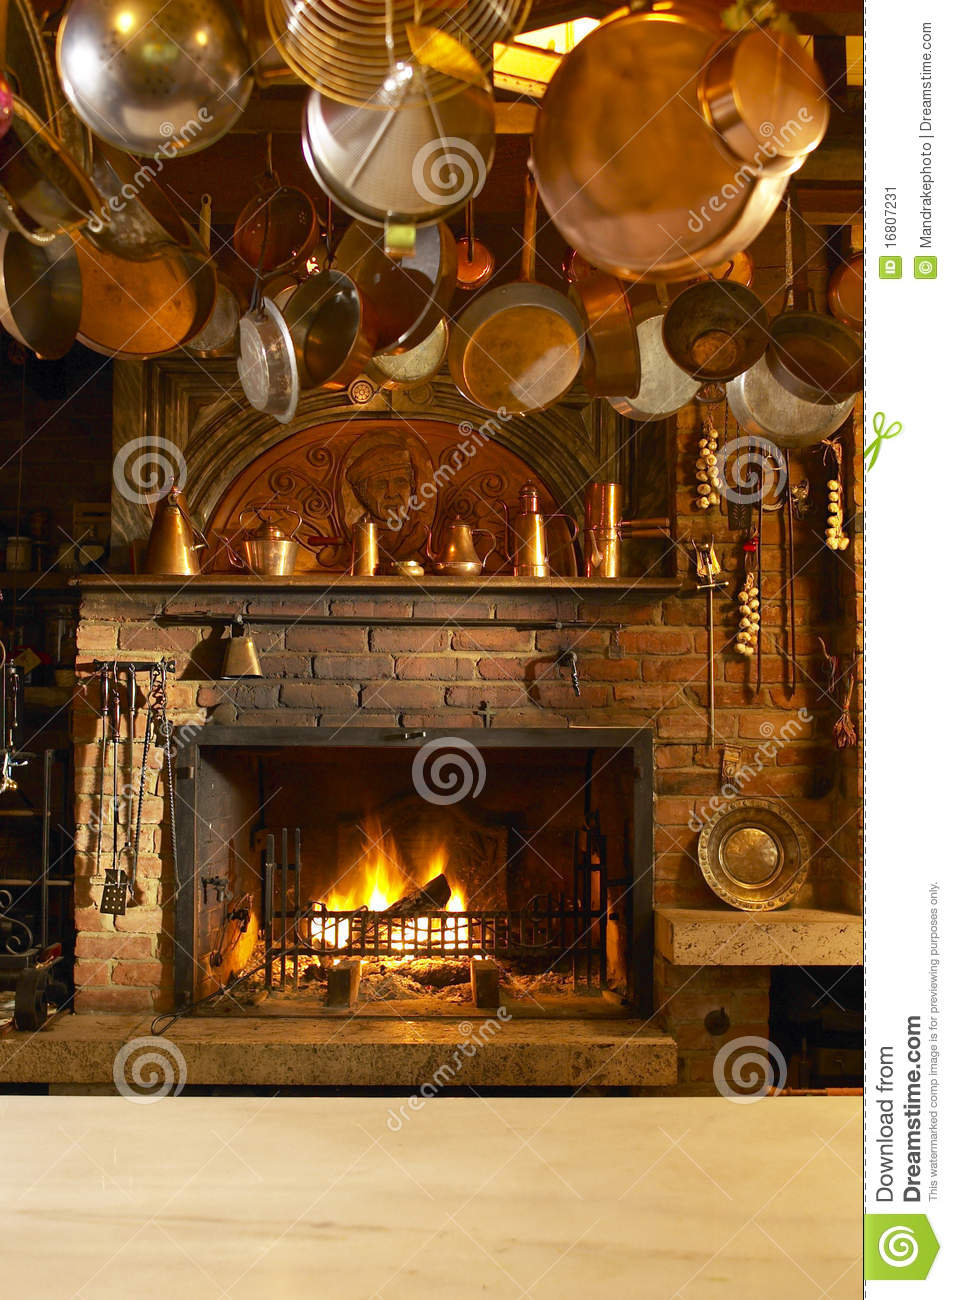 kitchen utensil aid immersion blender antique with fireplace stock image - image: 16807231